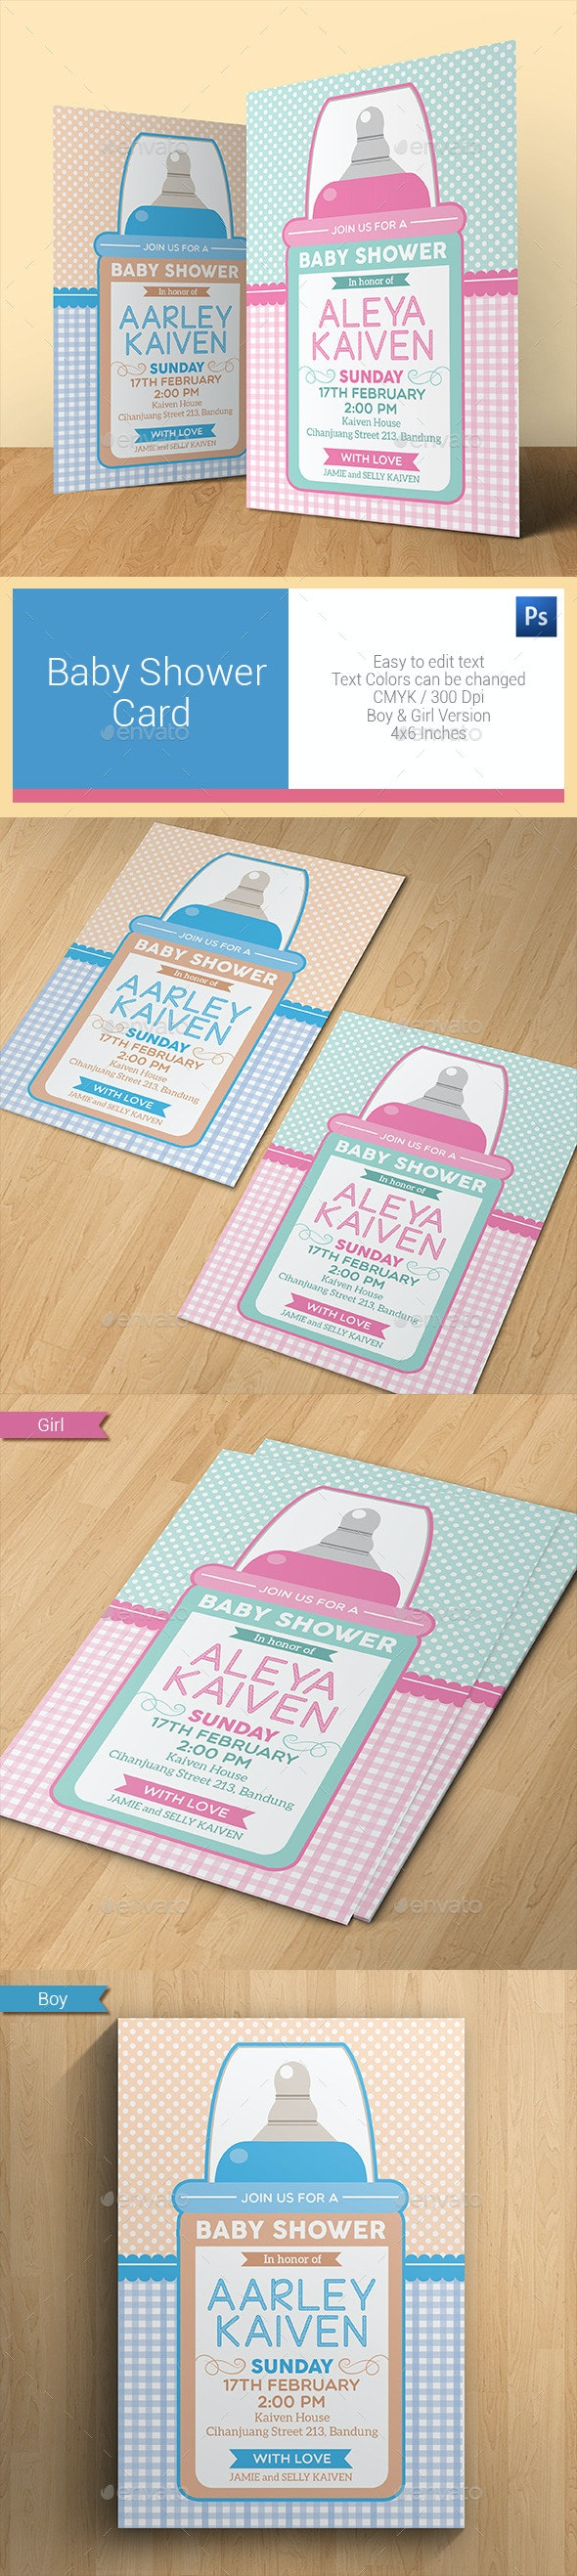 Baby Shower Card - Invitations Cards & Invites